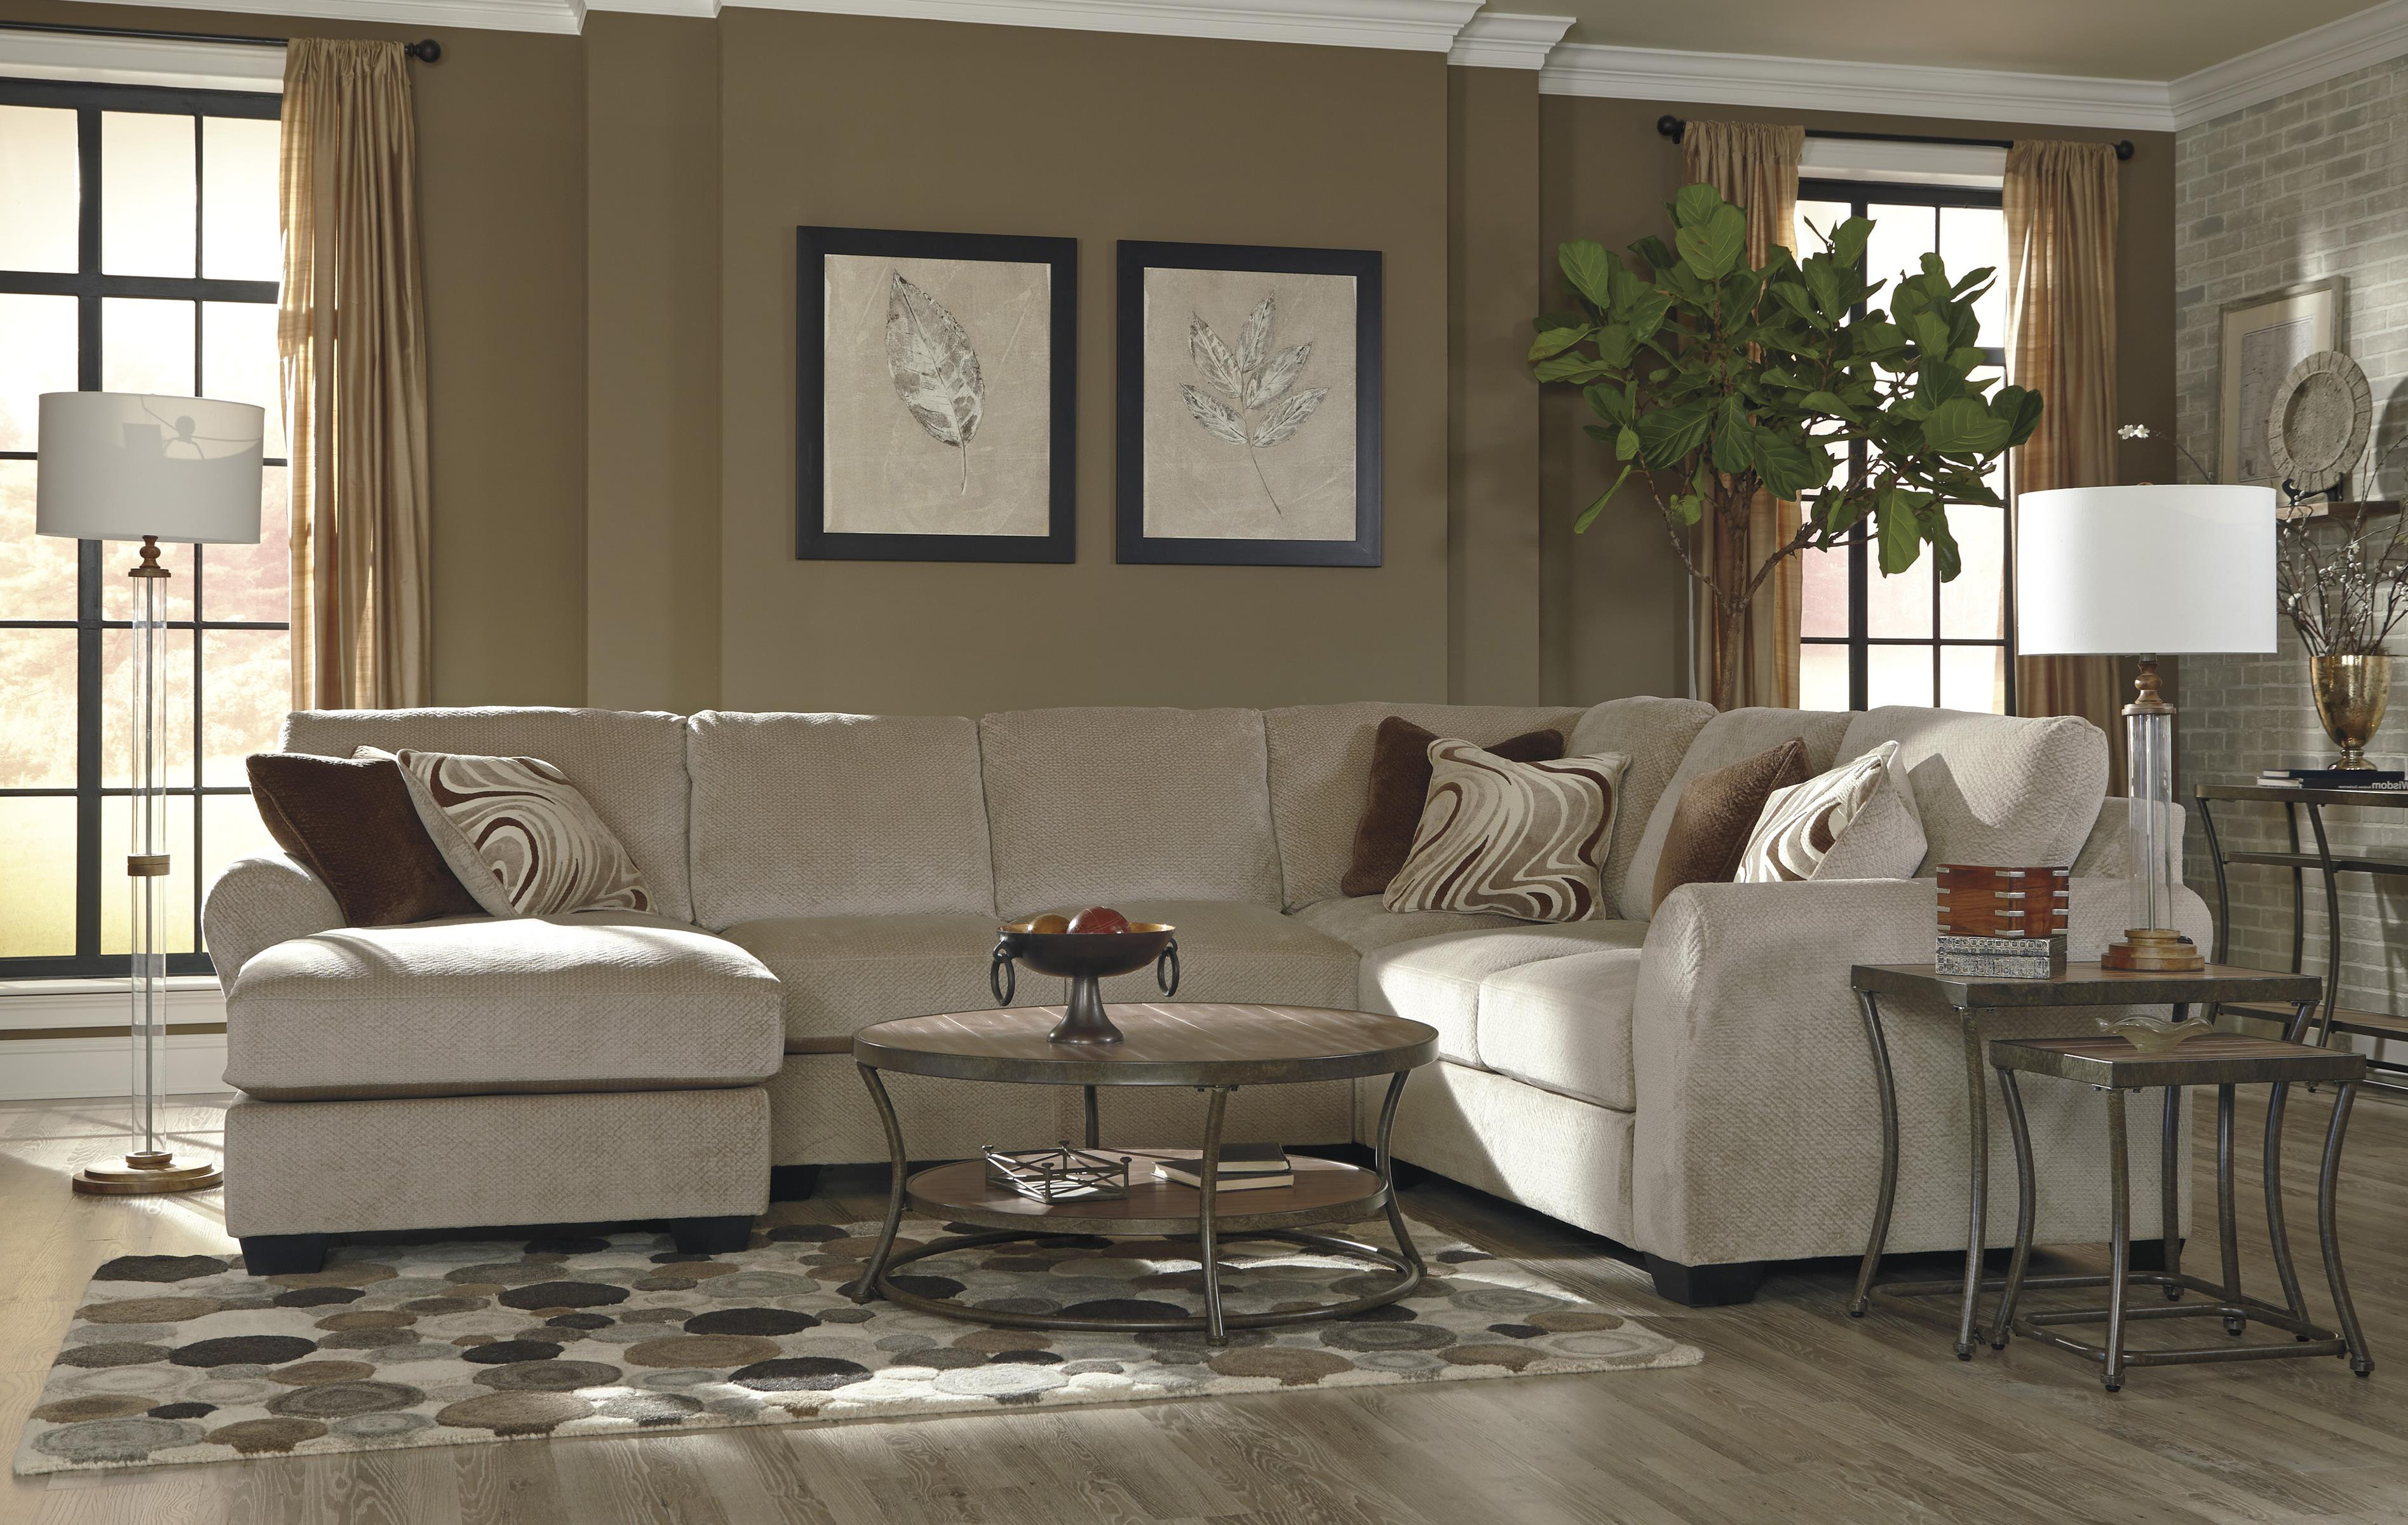 Benchcraft hazes 4 piece sectional w left chaise john v for 4 piece sectional with chaise